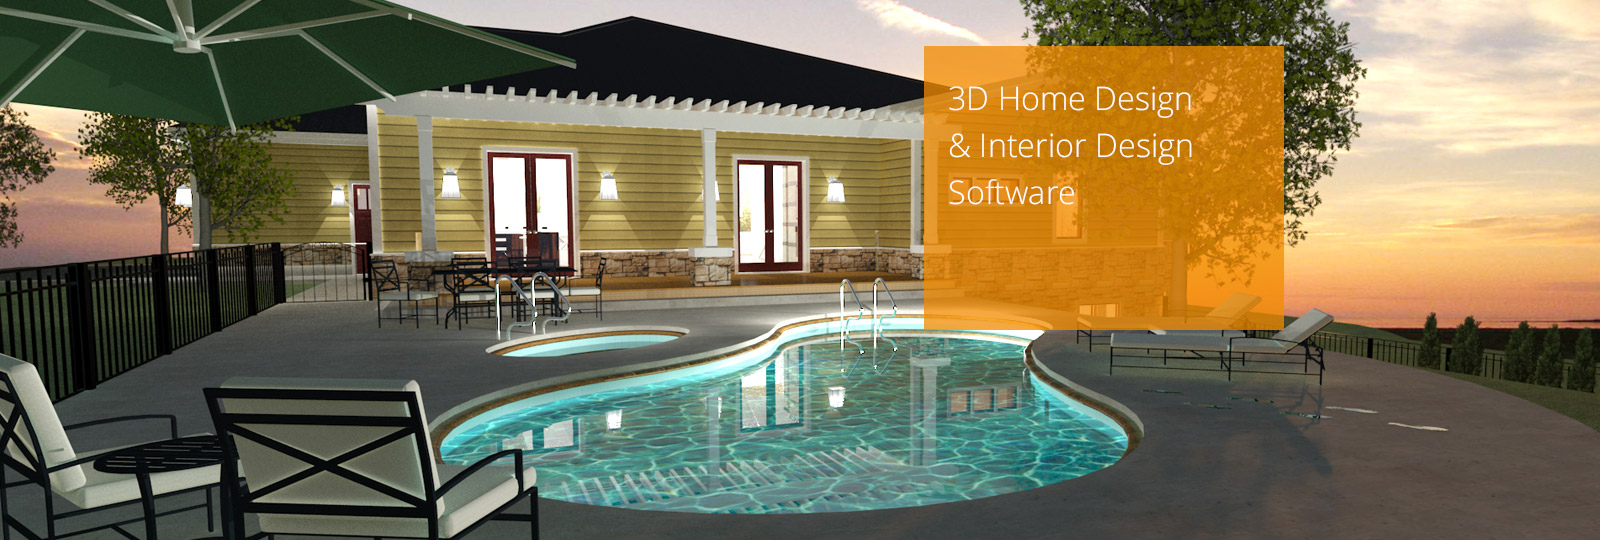 3d House Design Games For Free   Destroybmx.com